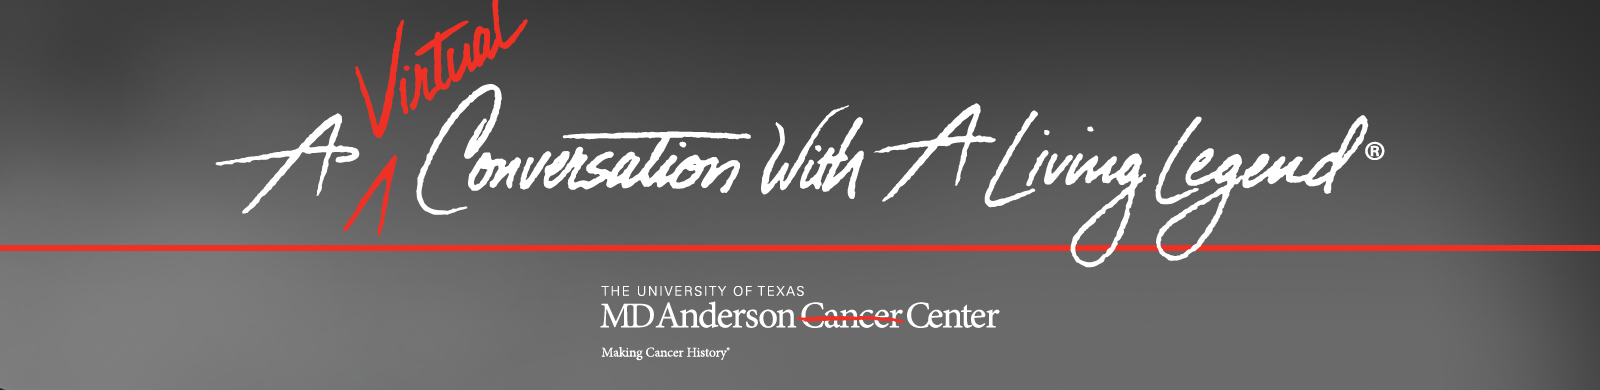 A Virtual Conversation With A Living Legend-The University of Texas-MD Anderson Cancer Center-Making Cancer History